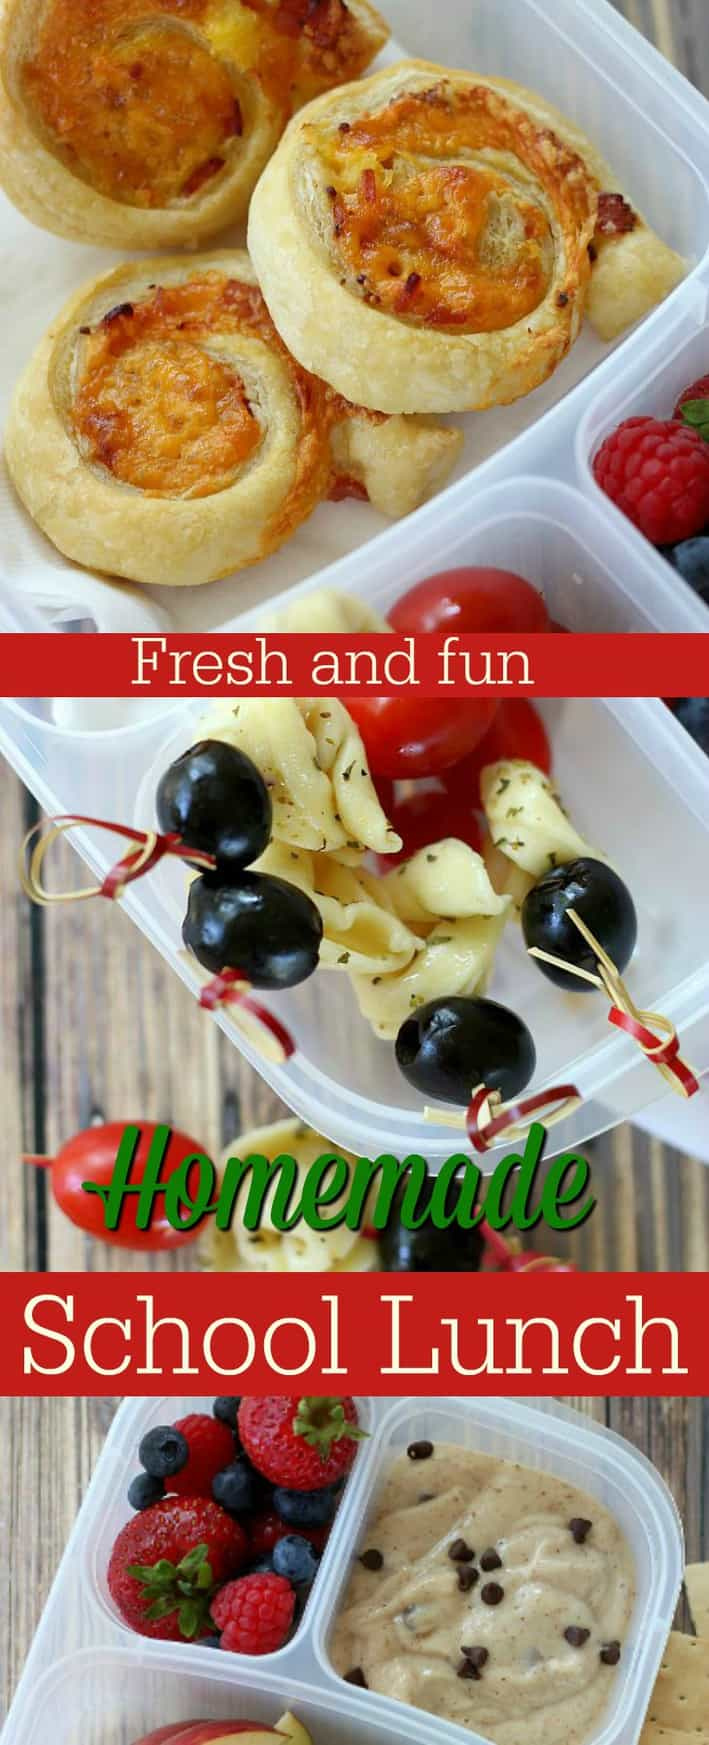 Collection of ideas for yummy (and easy) homemade school lunches. #schoollunch #snacks #kidslunch